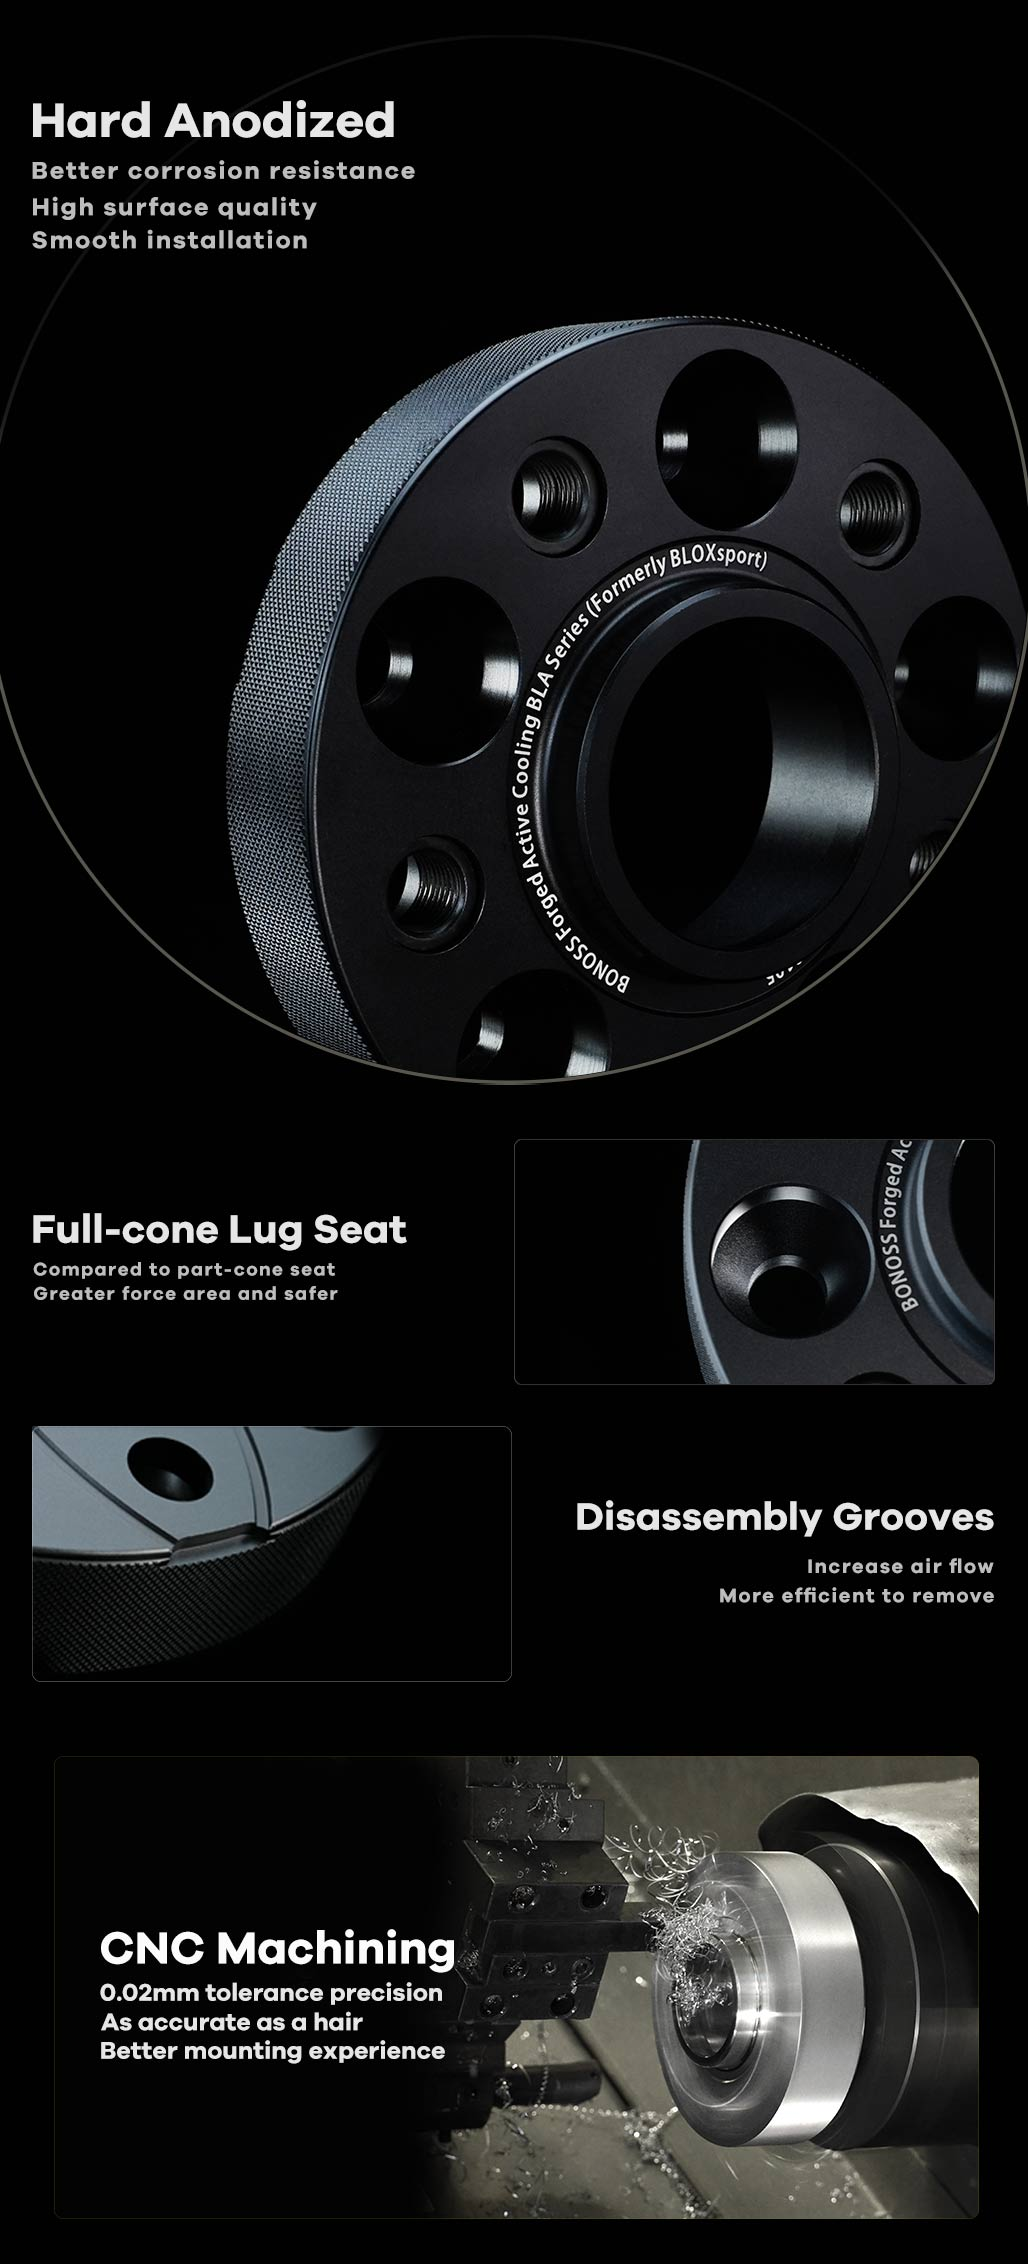 BONOSS Forged Active Cooling Hubcentric Wheel Spacers 5 Lugs Wheel Adapters Aluminum Car Wheel Spacers High Performance (3)